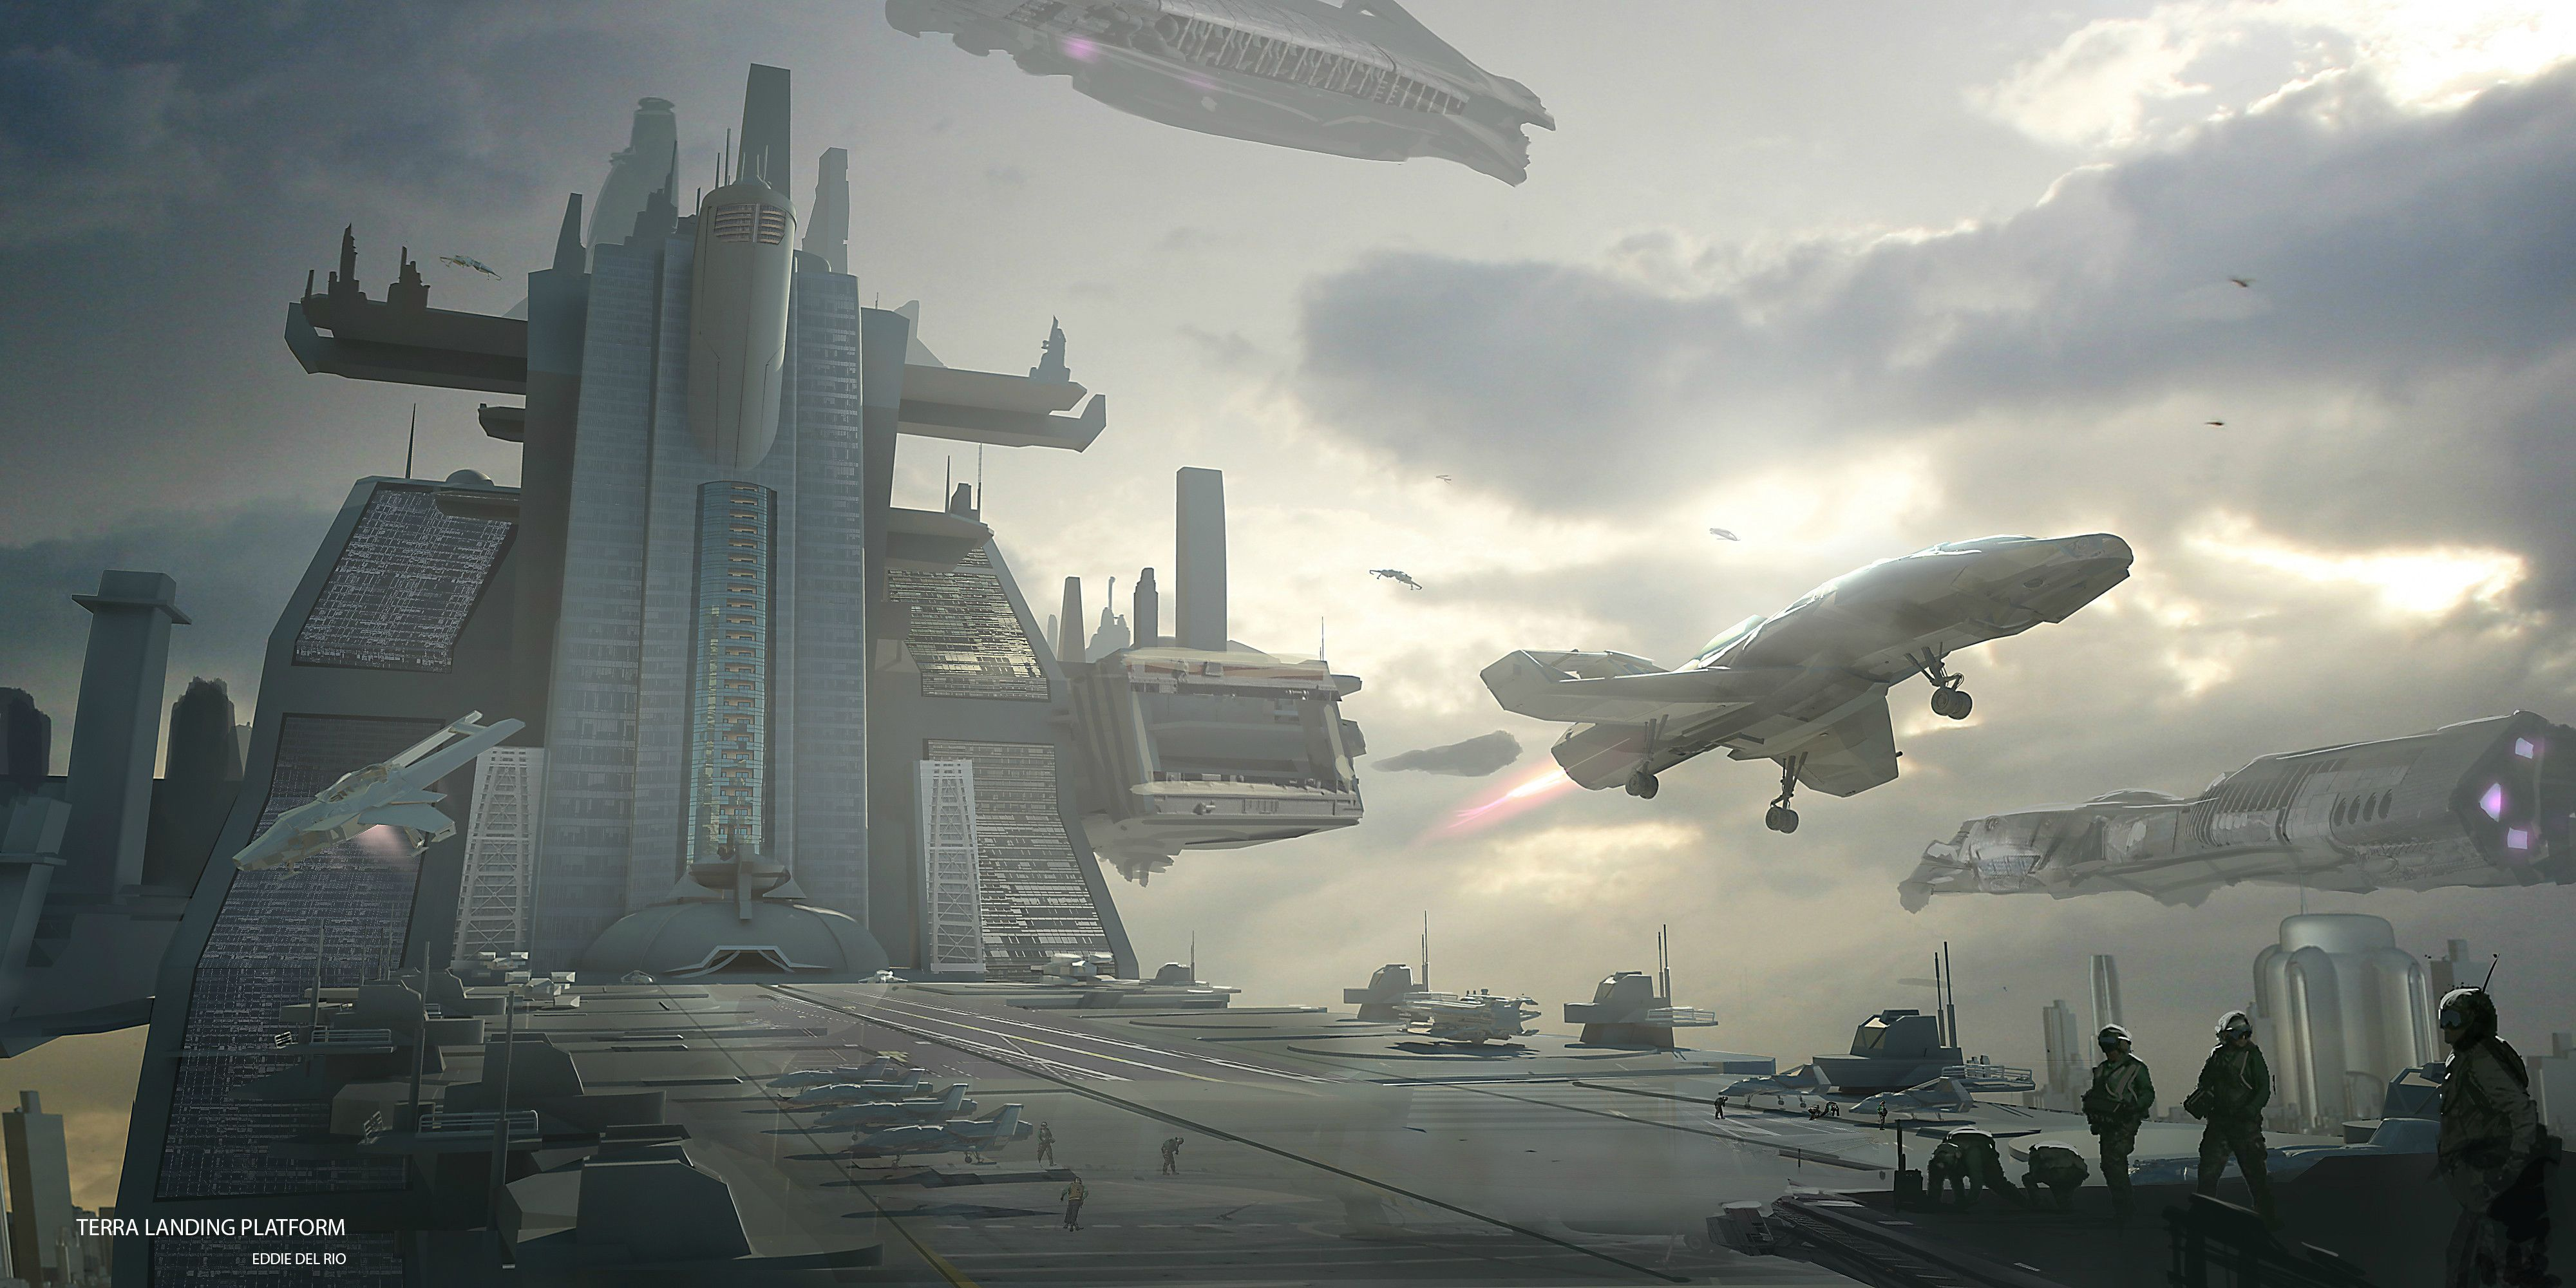 Star Citizen Wallpaper 1080p: Star Citizen HD Wallpaper